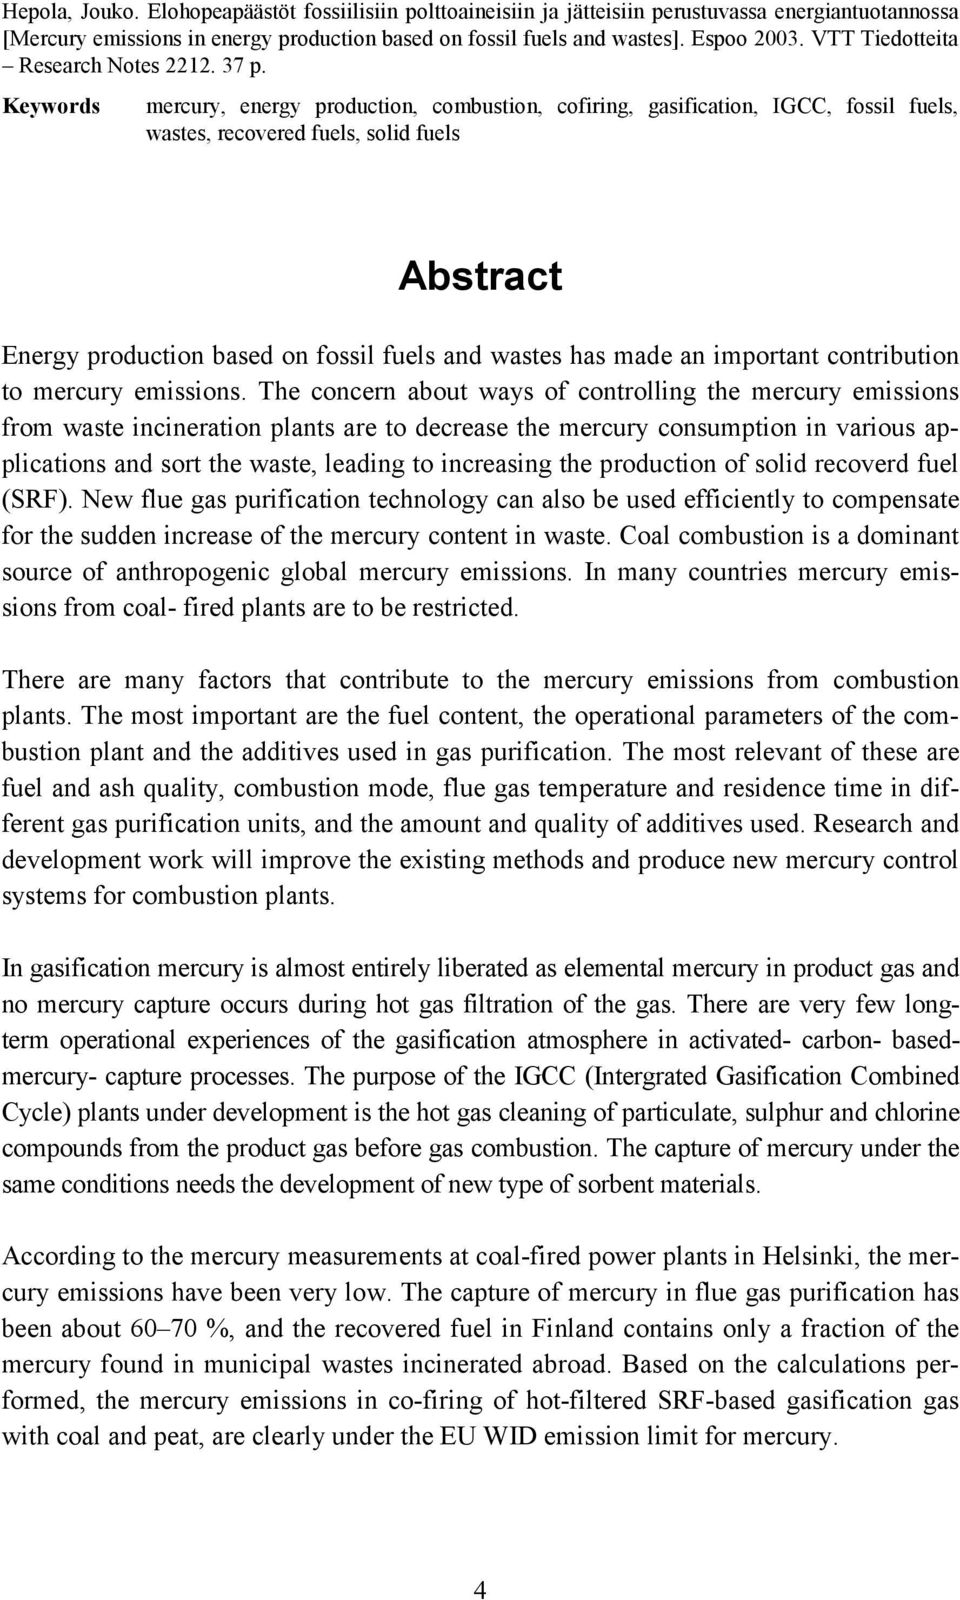 Keywords mercury, energy production, combustion, cofiring, gasification, IGCC, fossil fuels, wastes, recovered fuels, solid fuels Abstract Energy production based on fossil fuels and wastes has made